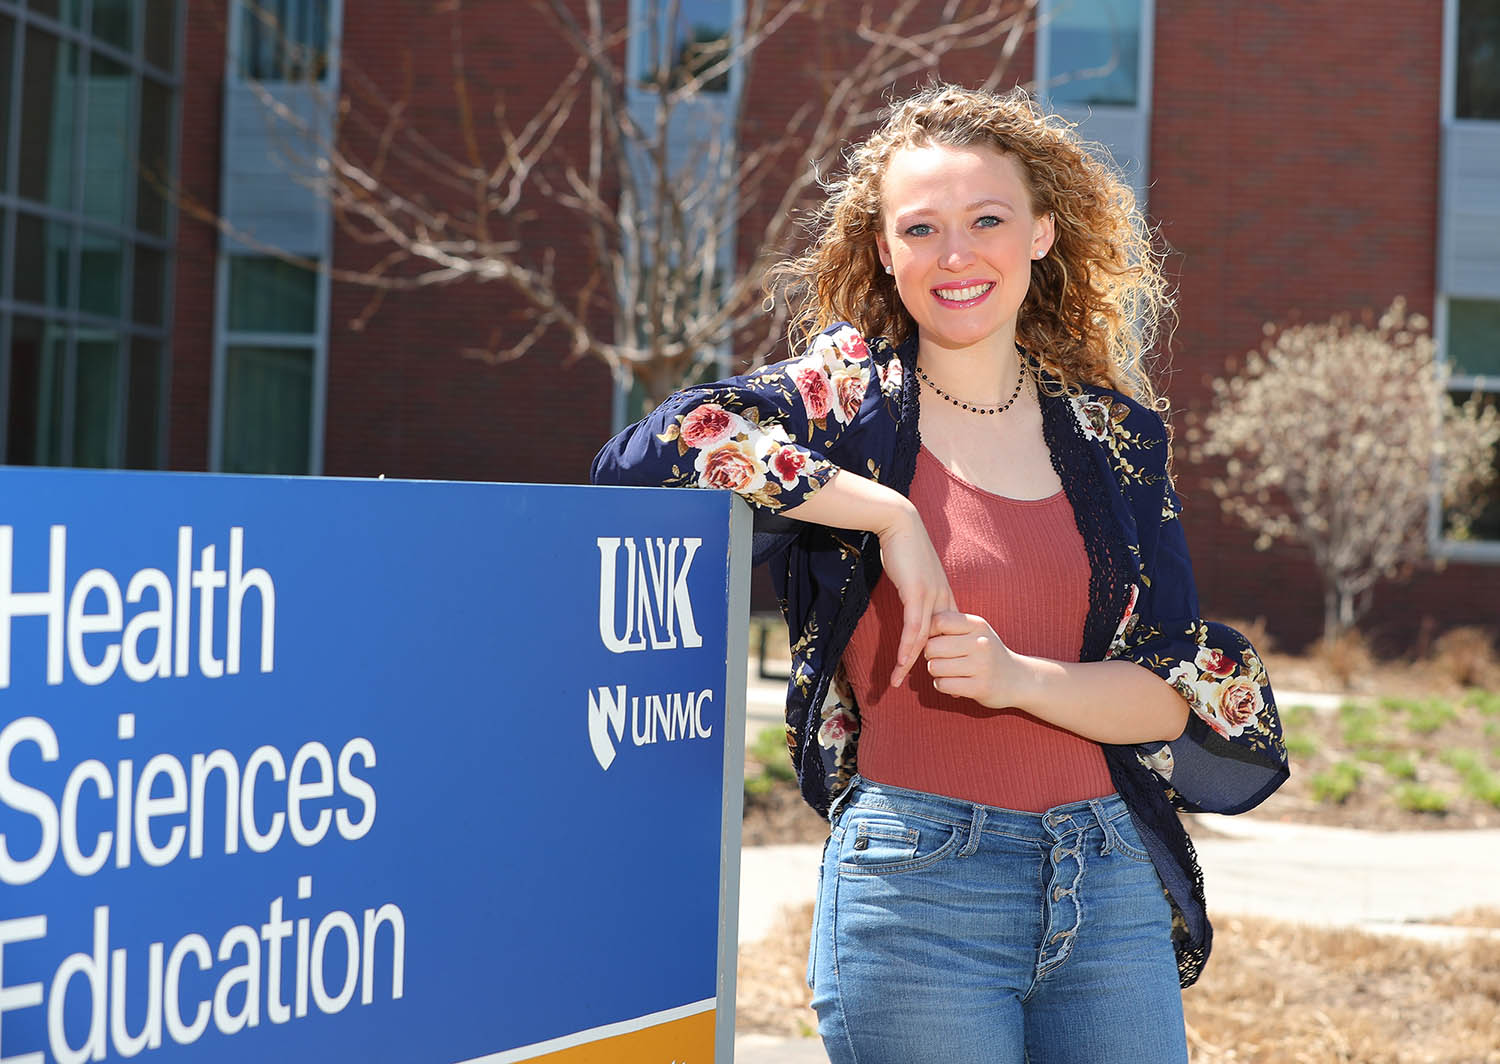 """UNK sophomore Maci Kroupa, a pre-nursing student from Hadar, says the coronavirus pandemic has strengthened her decision to join the profession. """"I'm so inspired by everyone who is working longer shifts, under mountains of personal protective equipment, and they're still doing their best to advocate for patients. They go to work every day knowing they're putting their own health at risk, but they still want to be there for their patients."""" (Photos by Corbey R. Dorsey, UNK Communications)"""